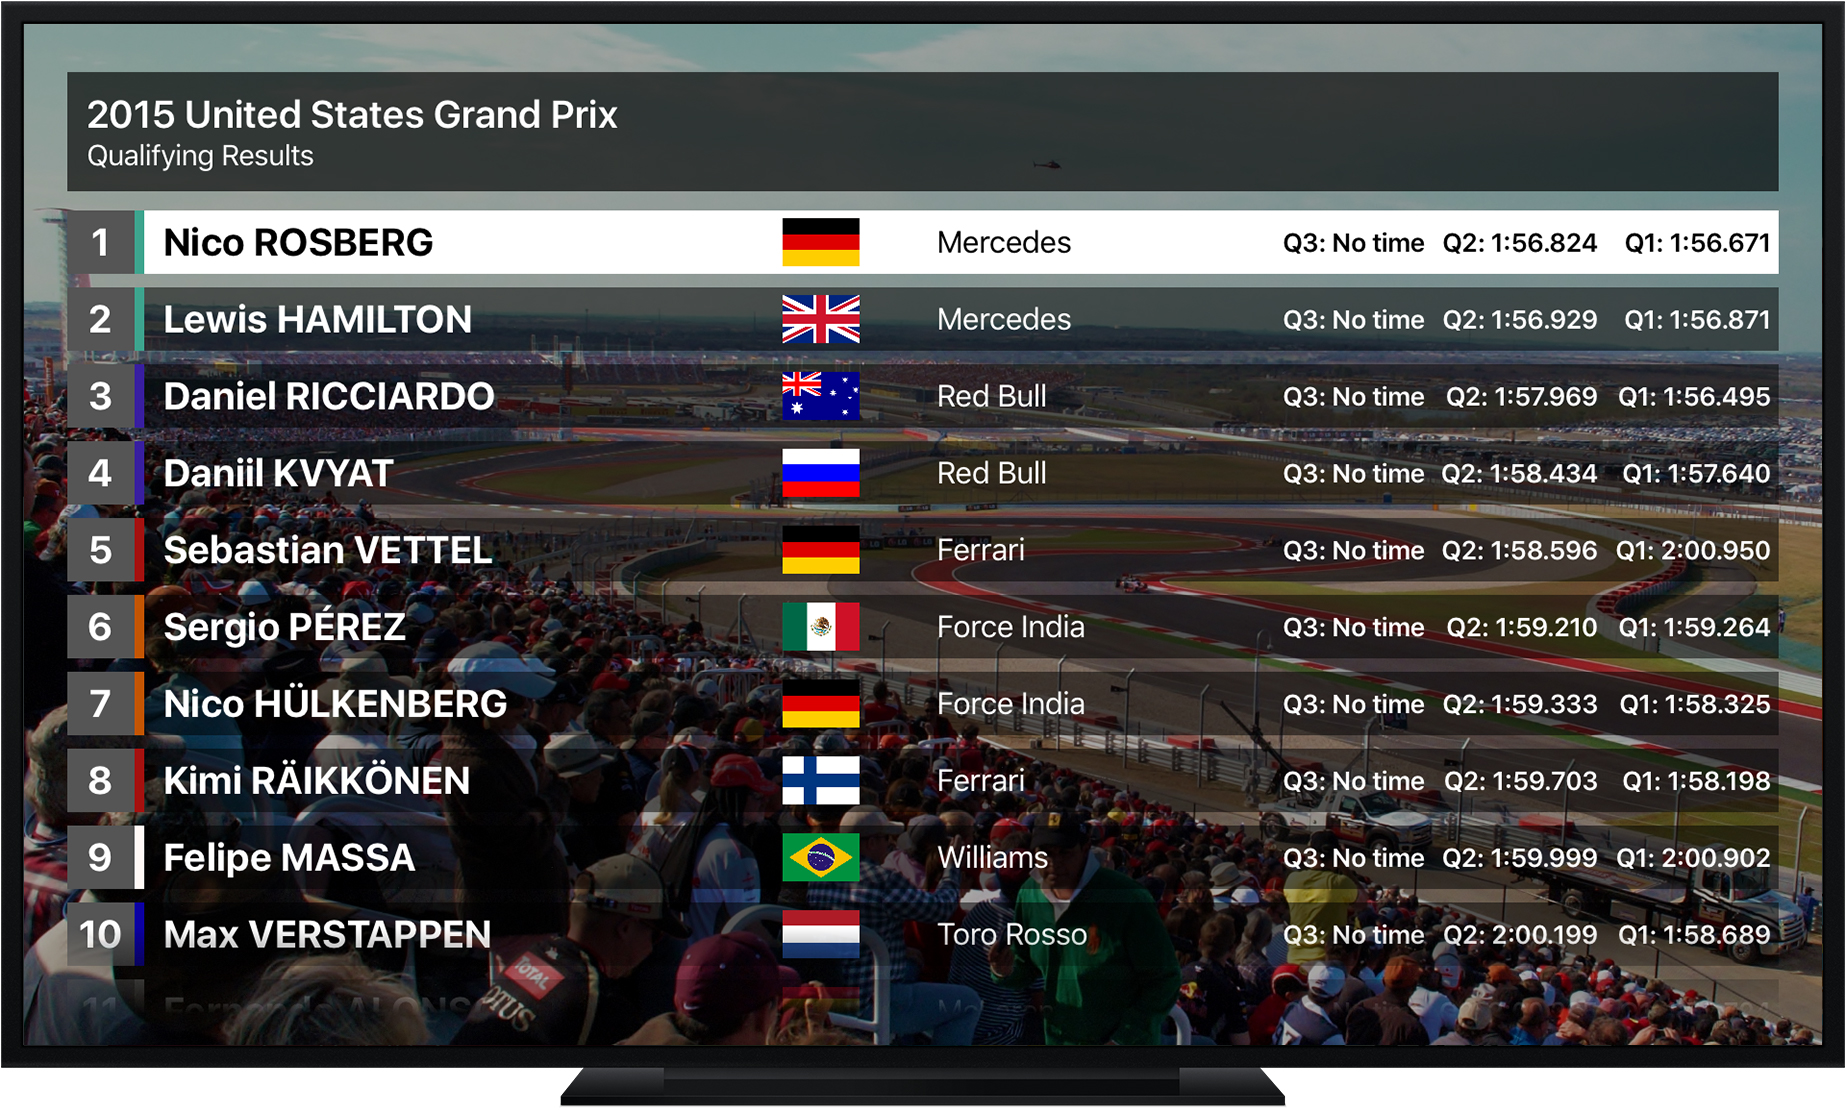 Qualifying Results - Grand Prix Stats